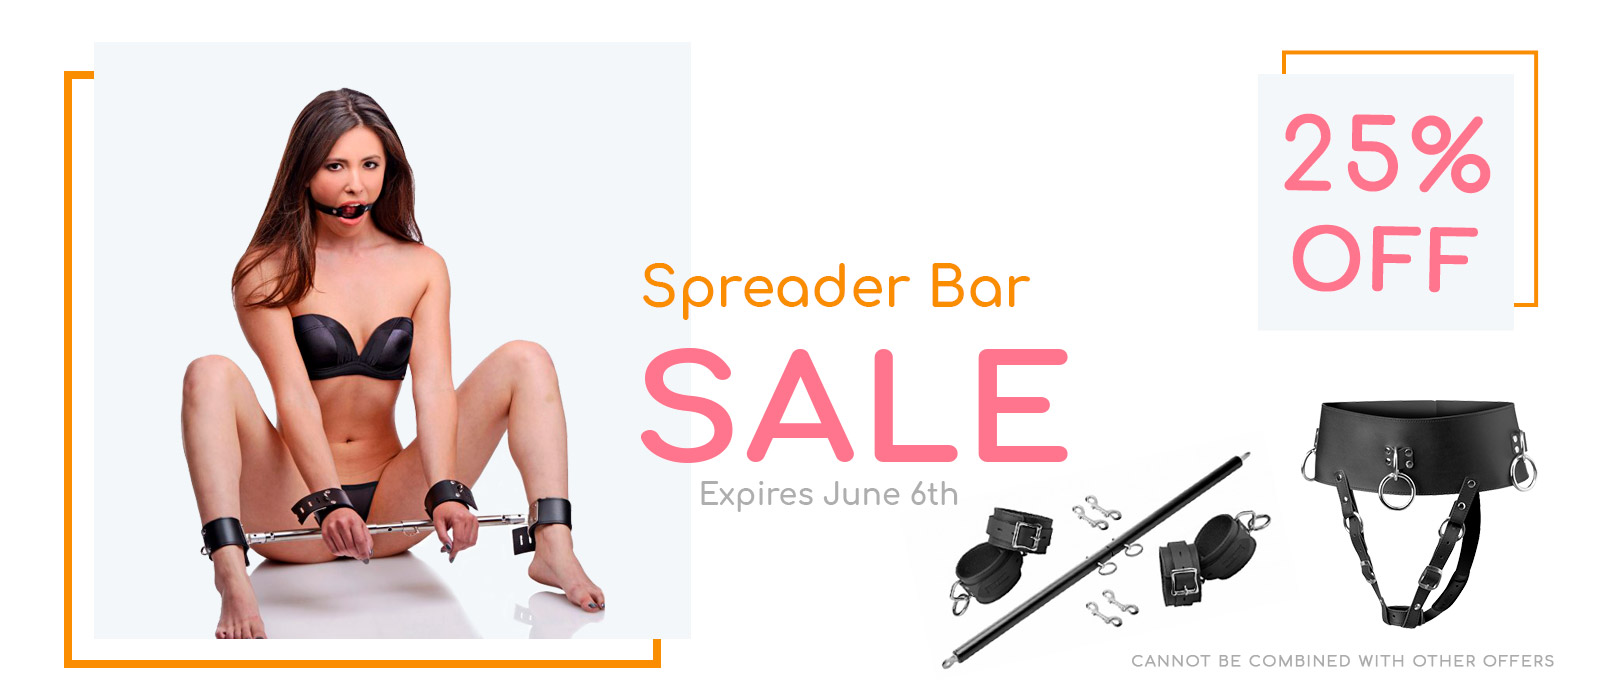 Spreader Bars and Belt Sale 25% off